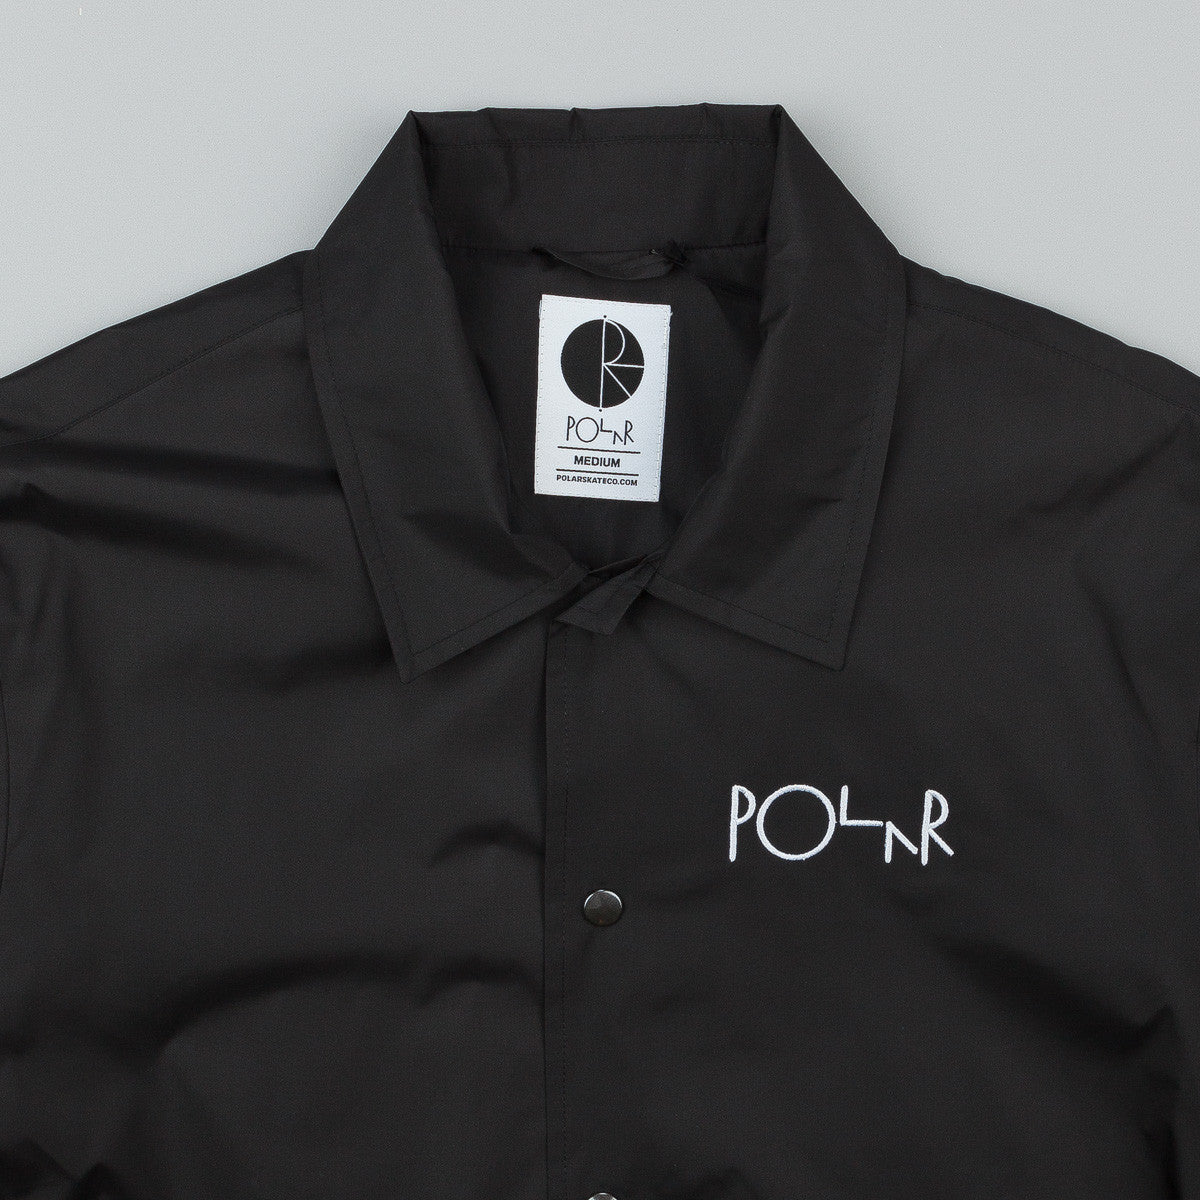 Polar Stroke Logo Patch Coach Jacket - Black